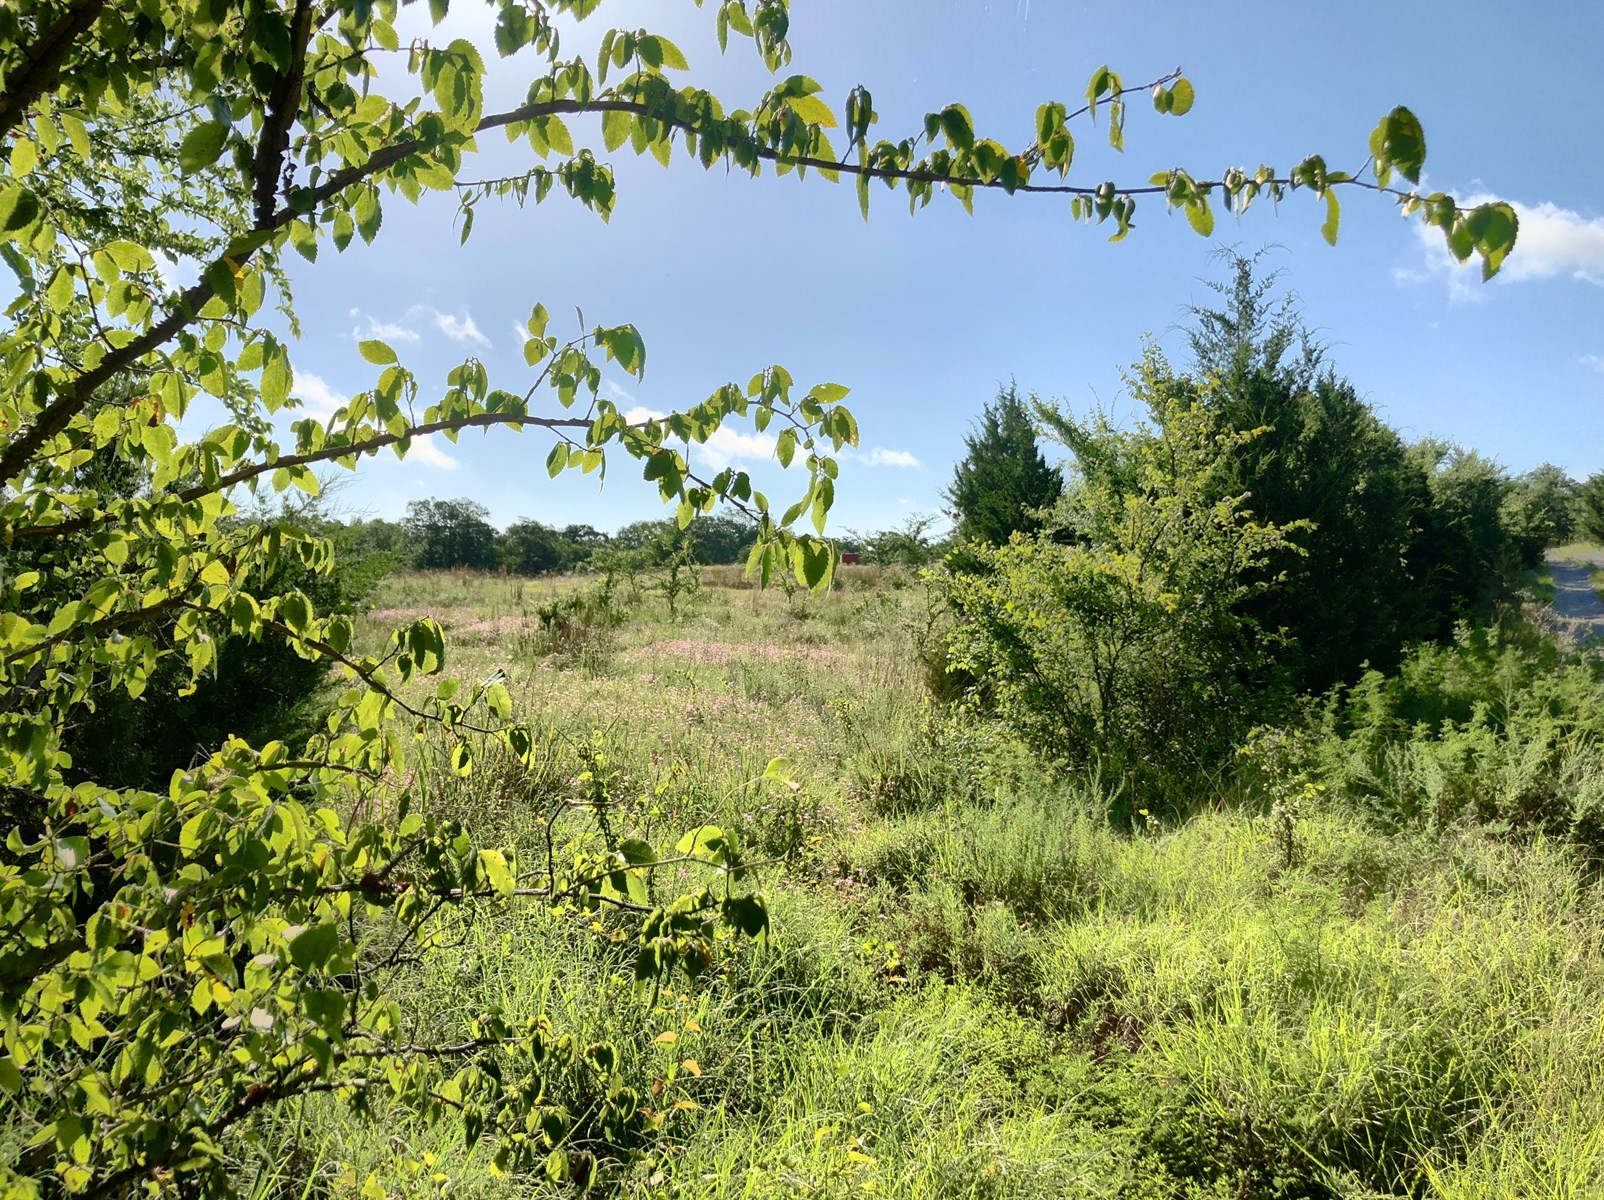 40 ACRES OF RECREATIONAL LAND FOR SALE IN MARSHALL COUNTY